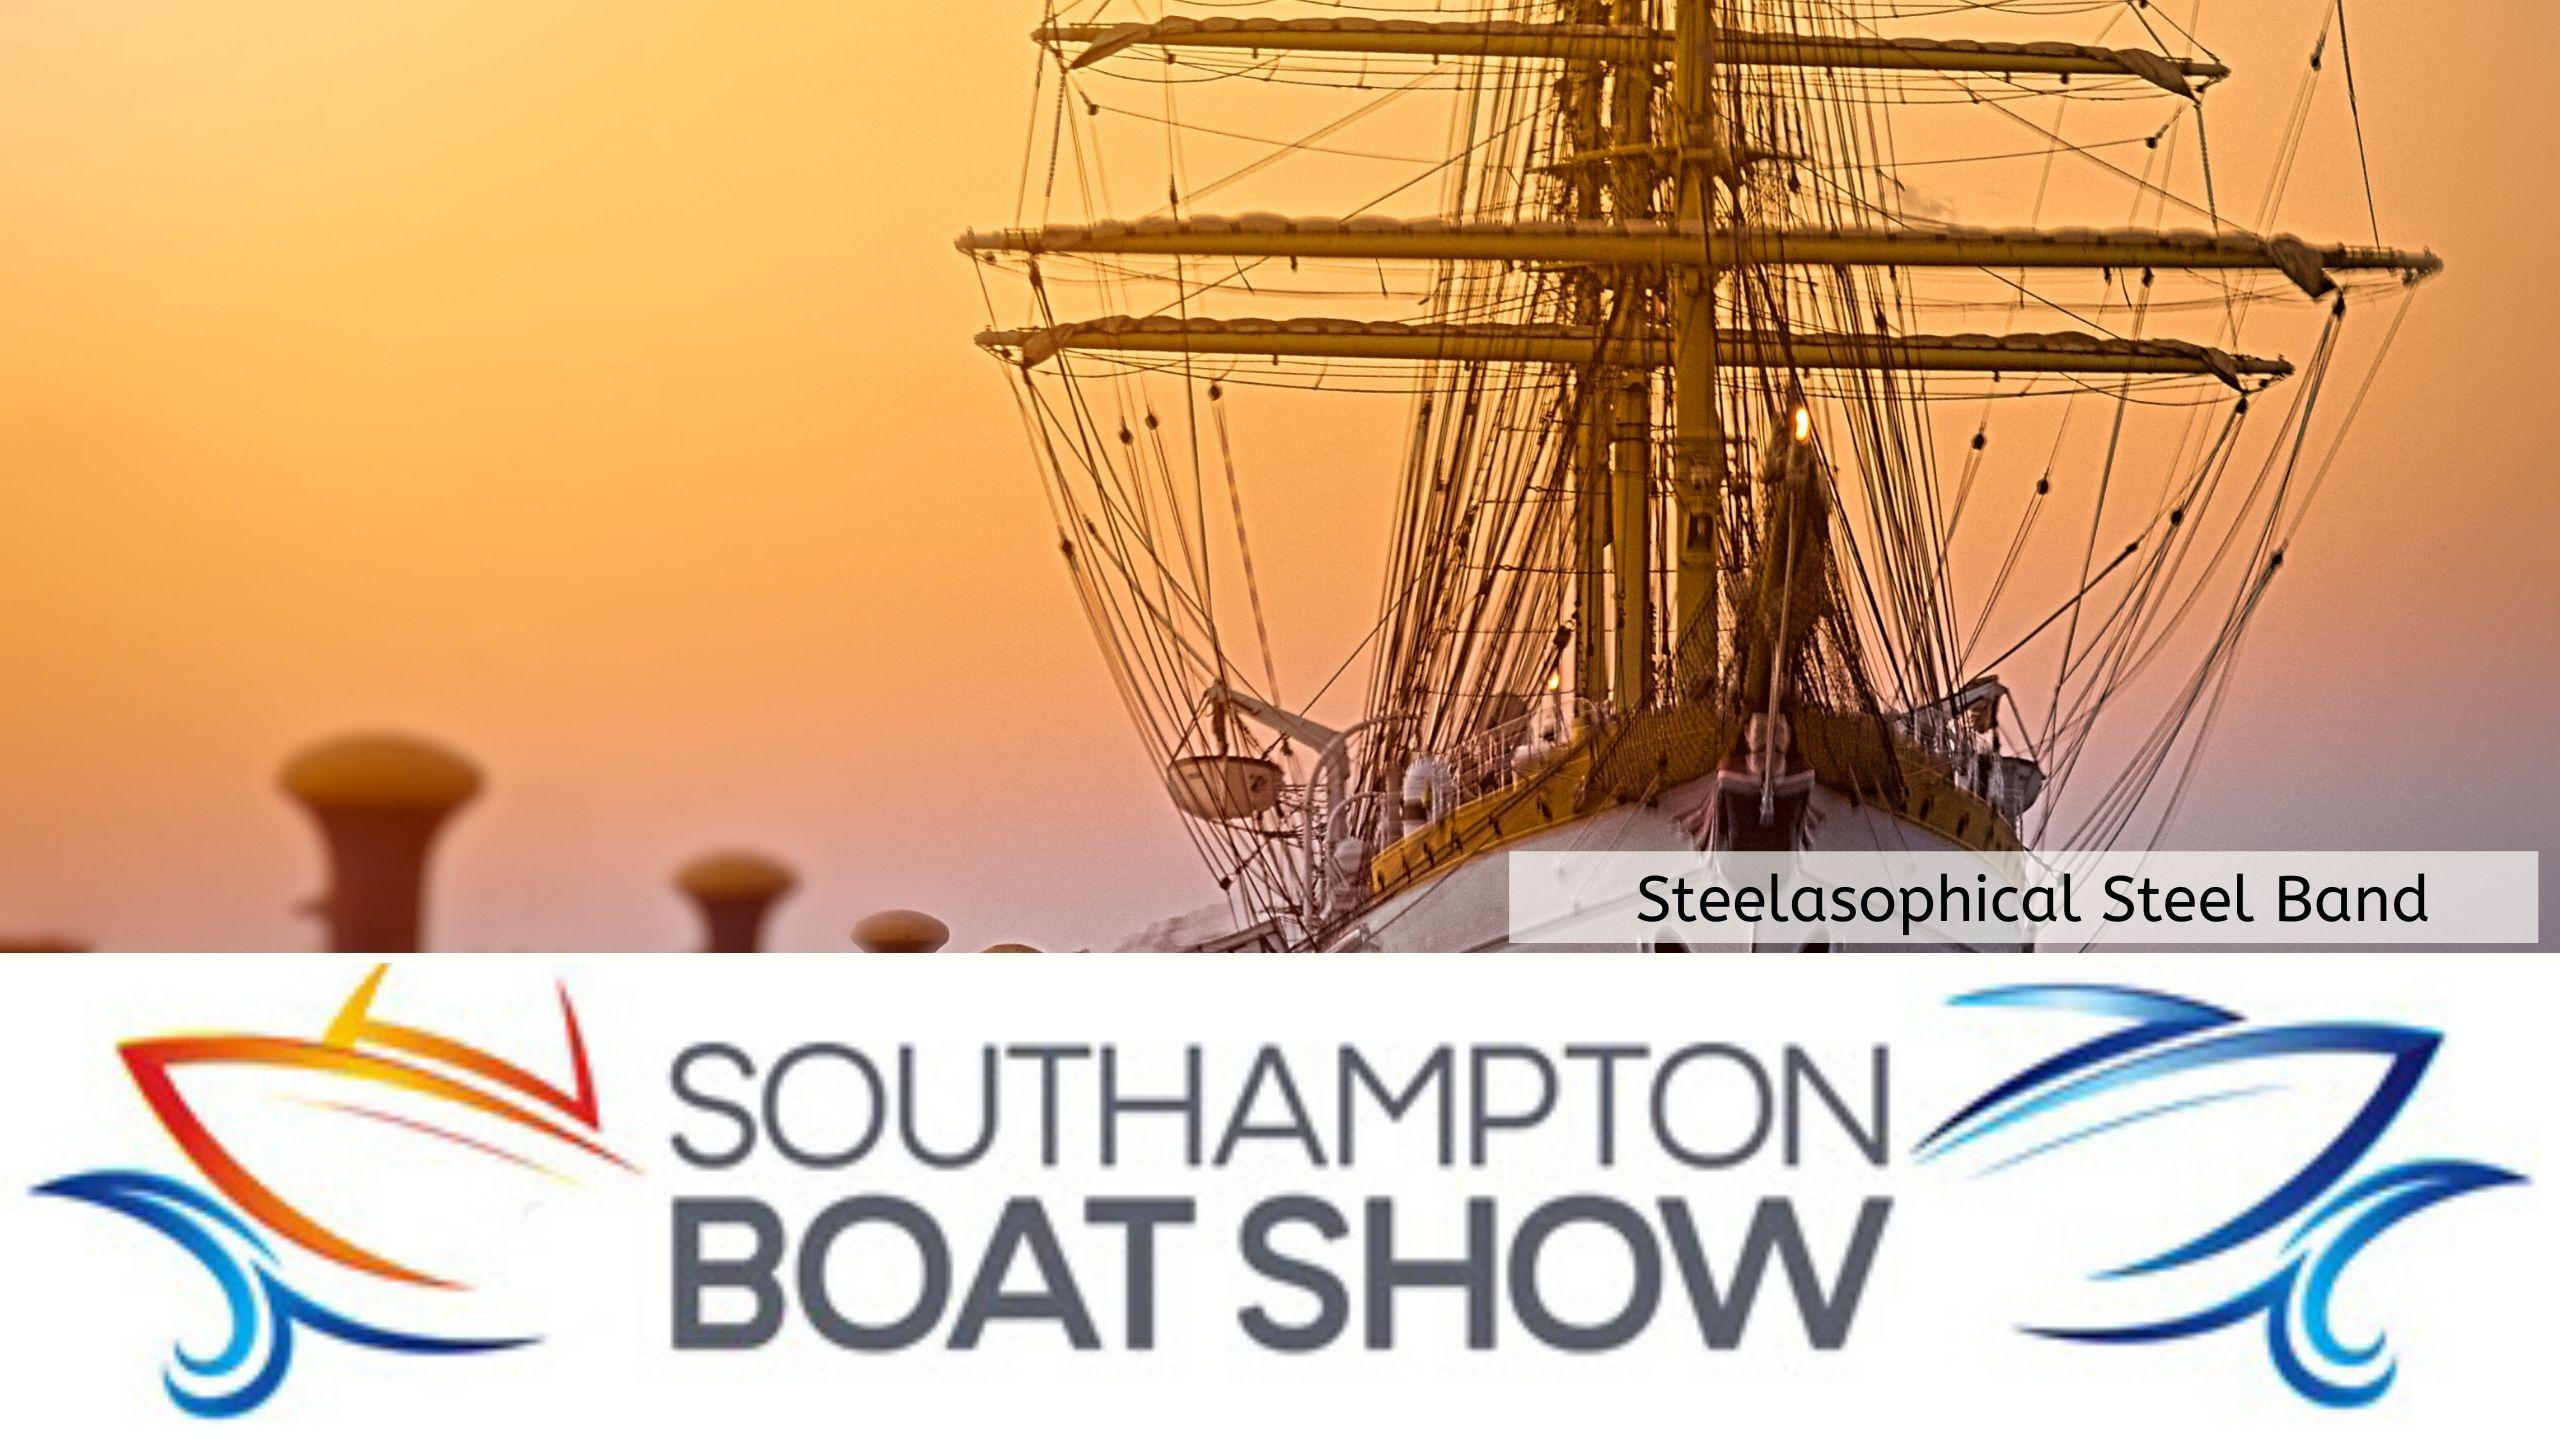 dd00 Steelasophical Steel Band Soton Southampton Boat Show YachtMarket Yacht Market